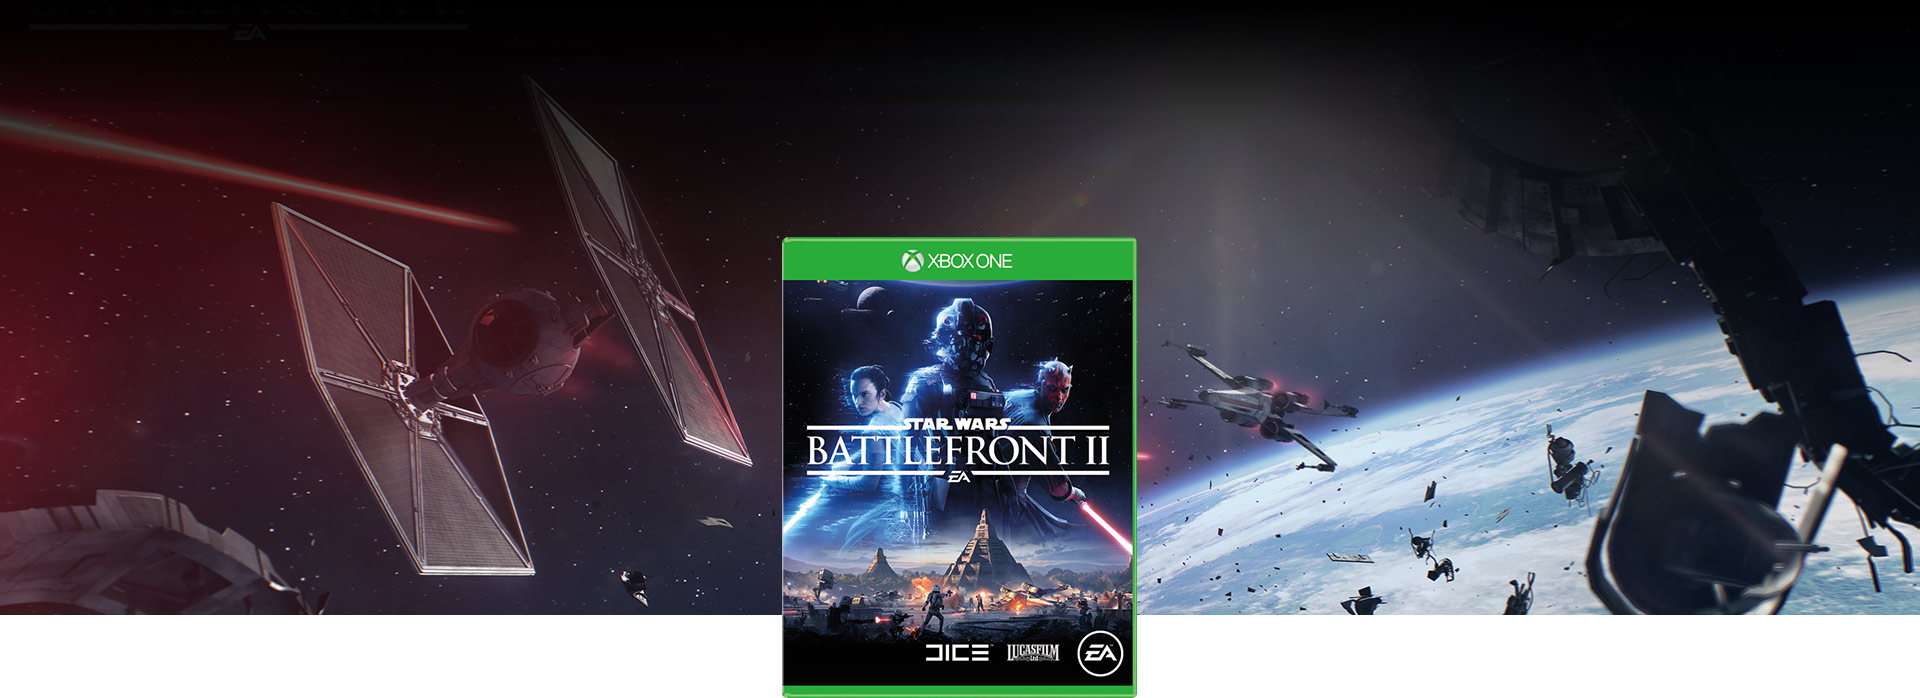 Star Wars Battlefront 2 包裝圖